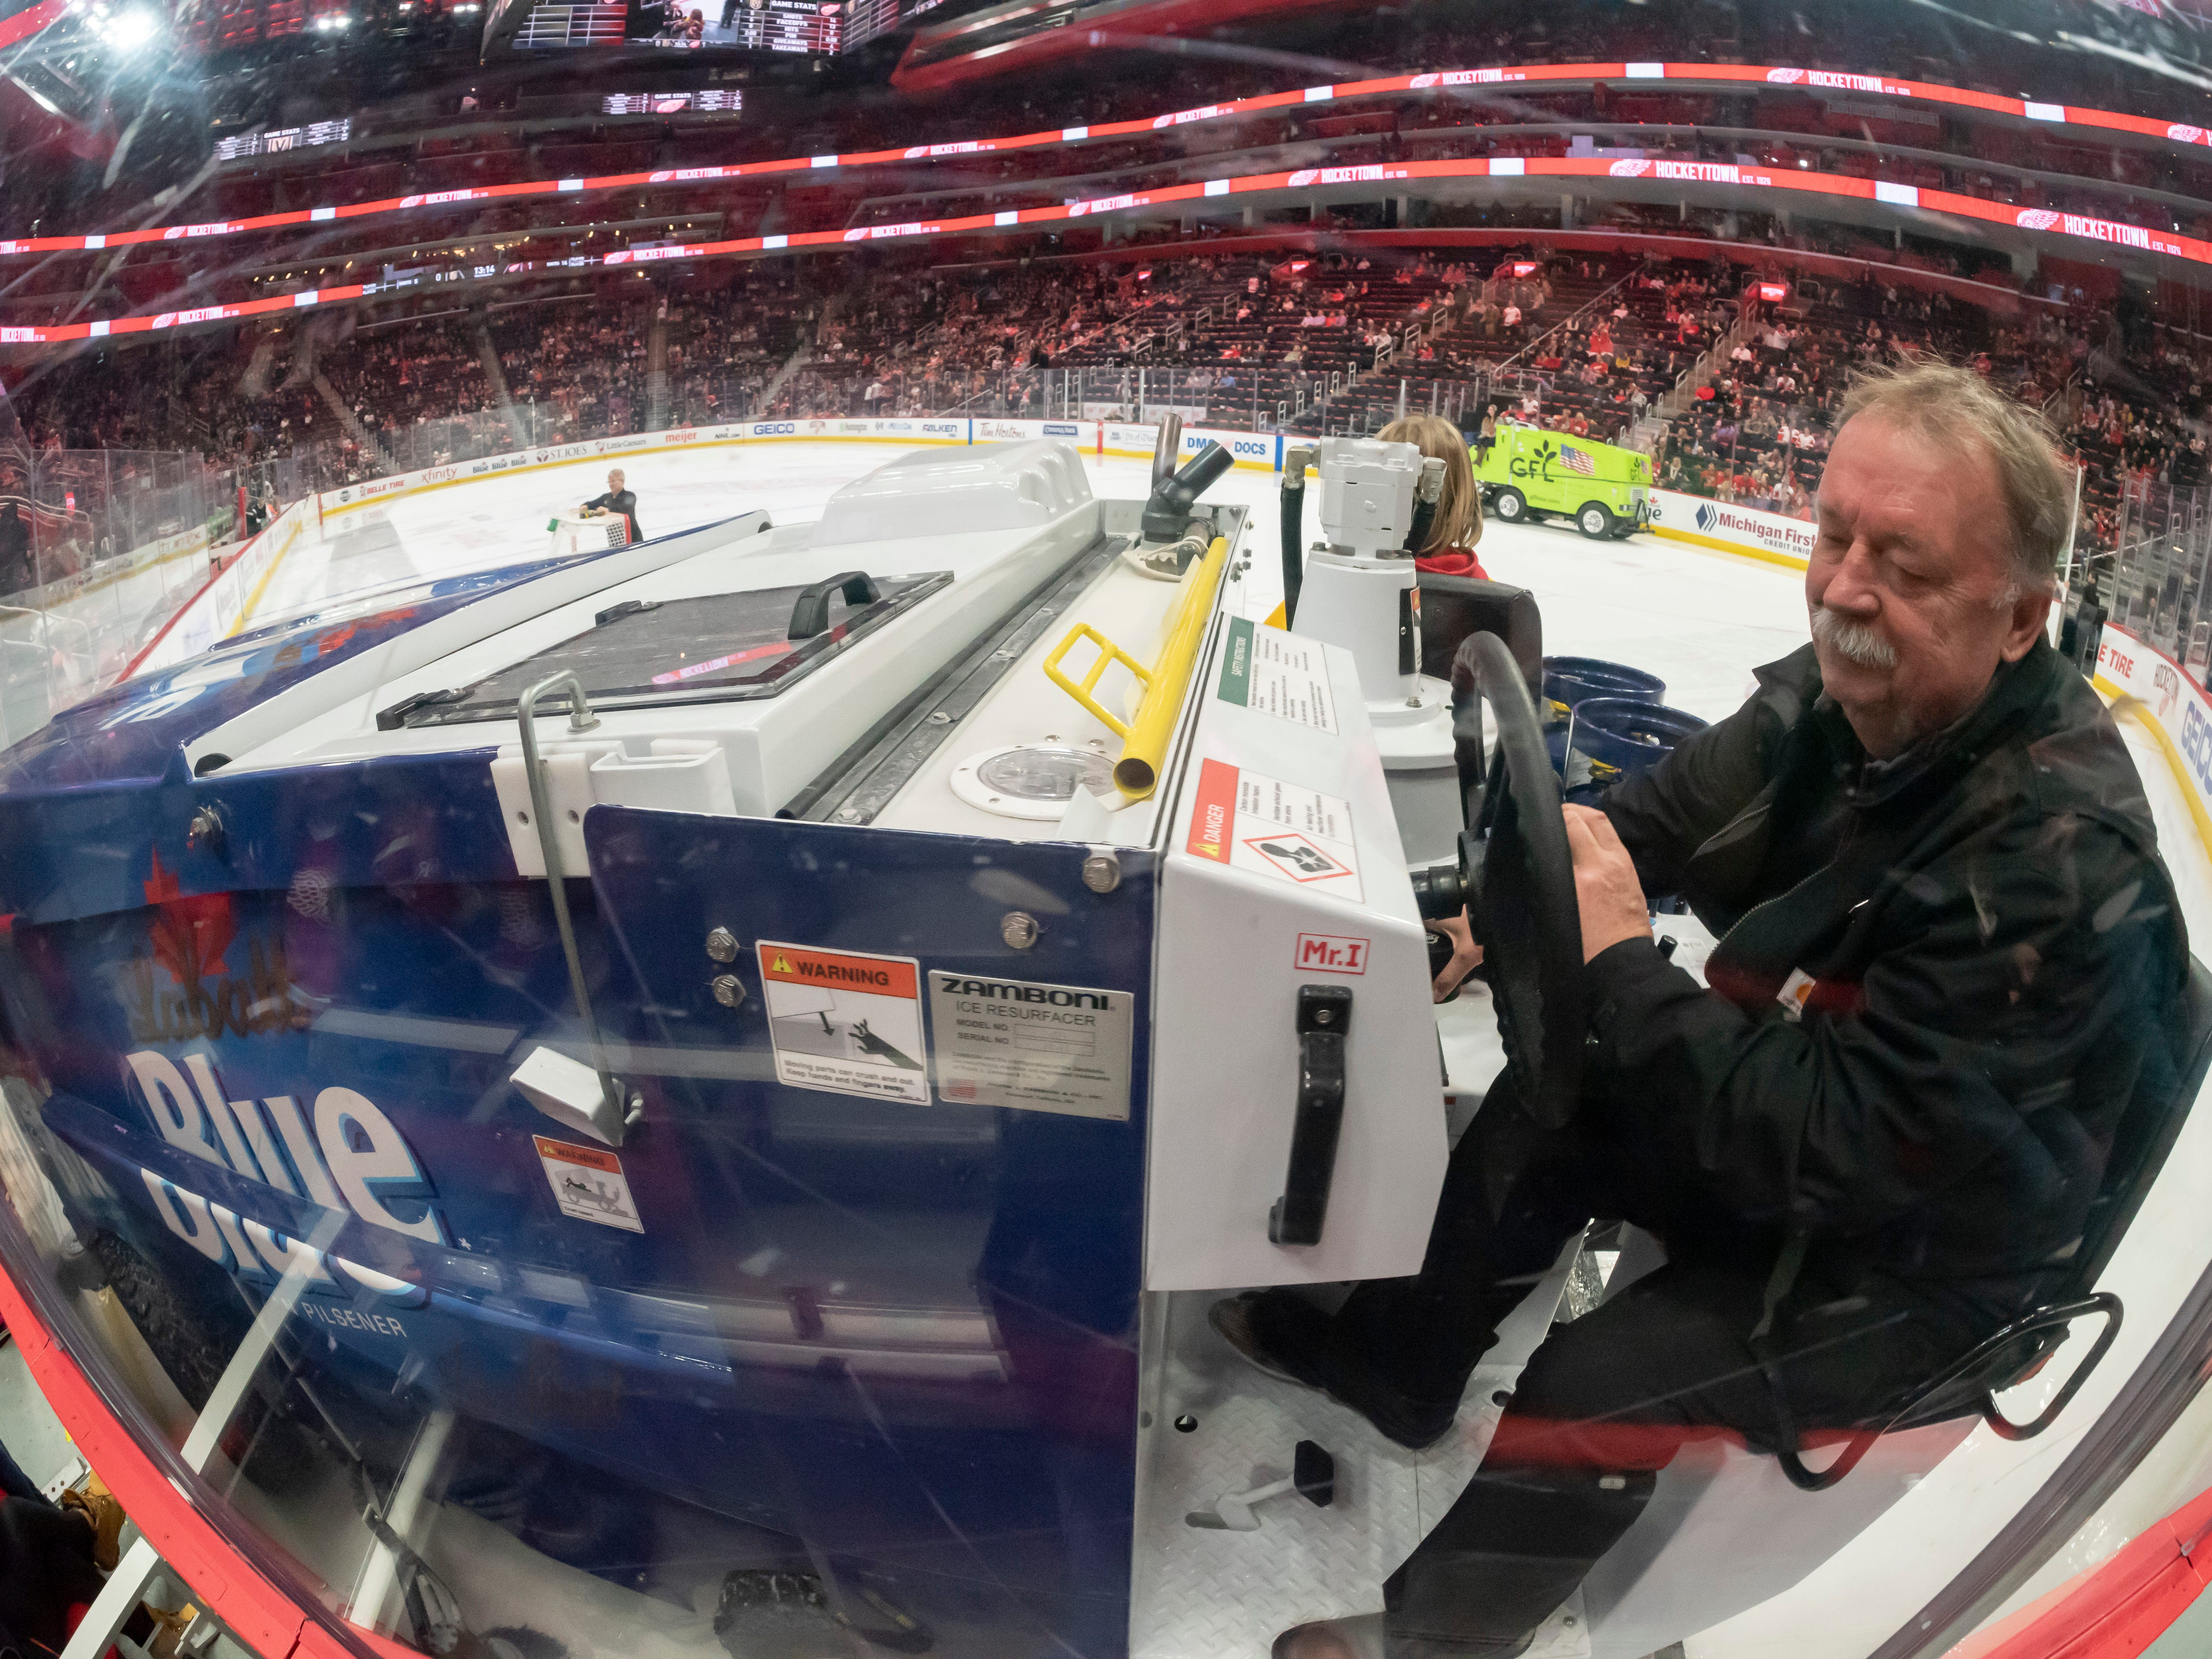 Al Sobotka uses a Zamboni to flood the ice between periods.